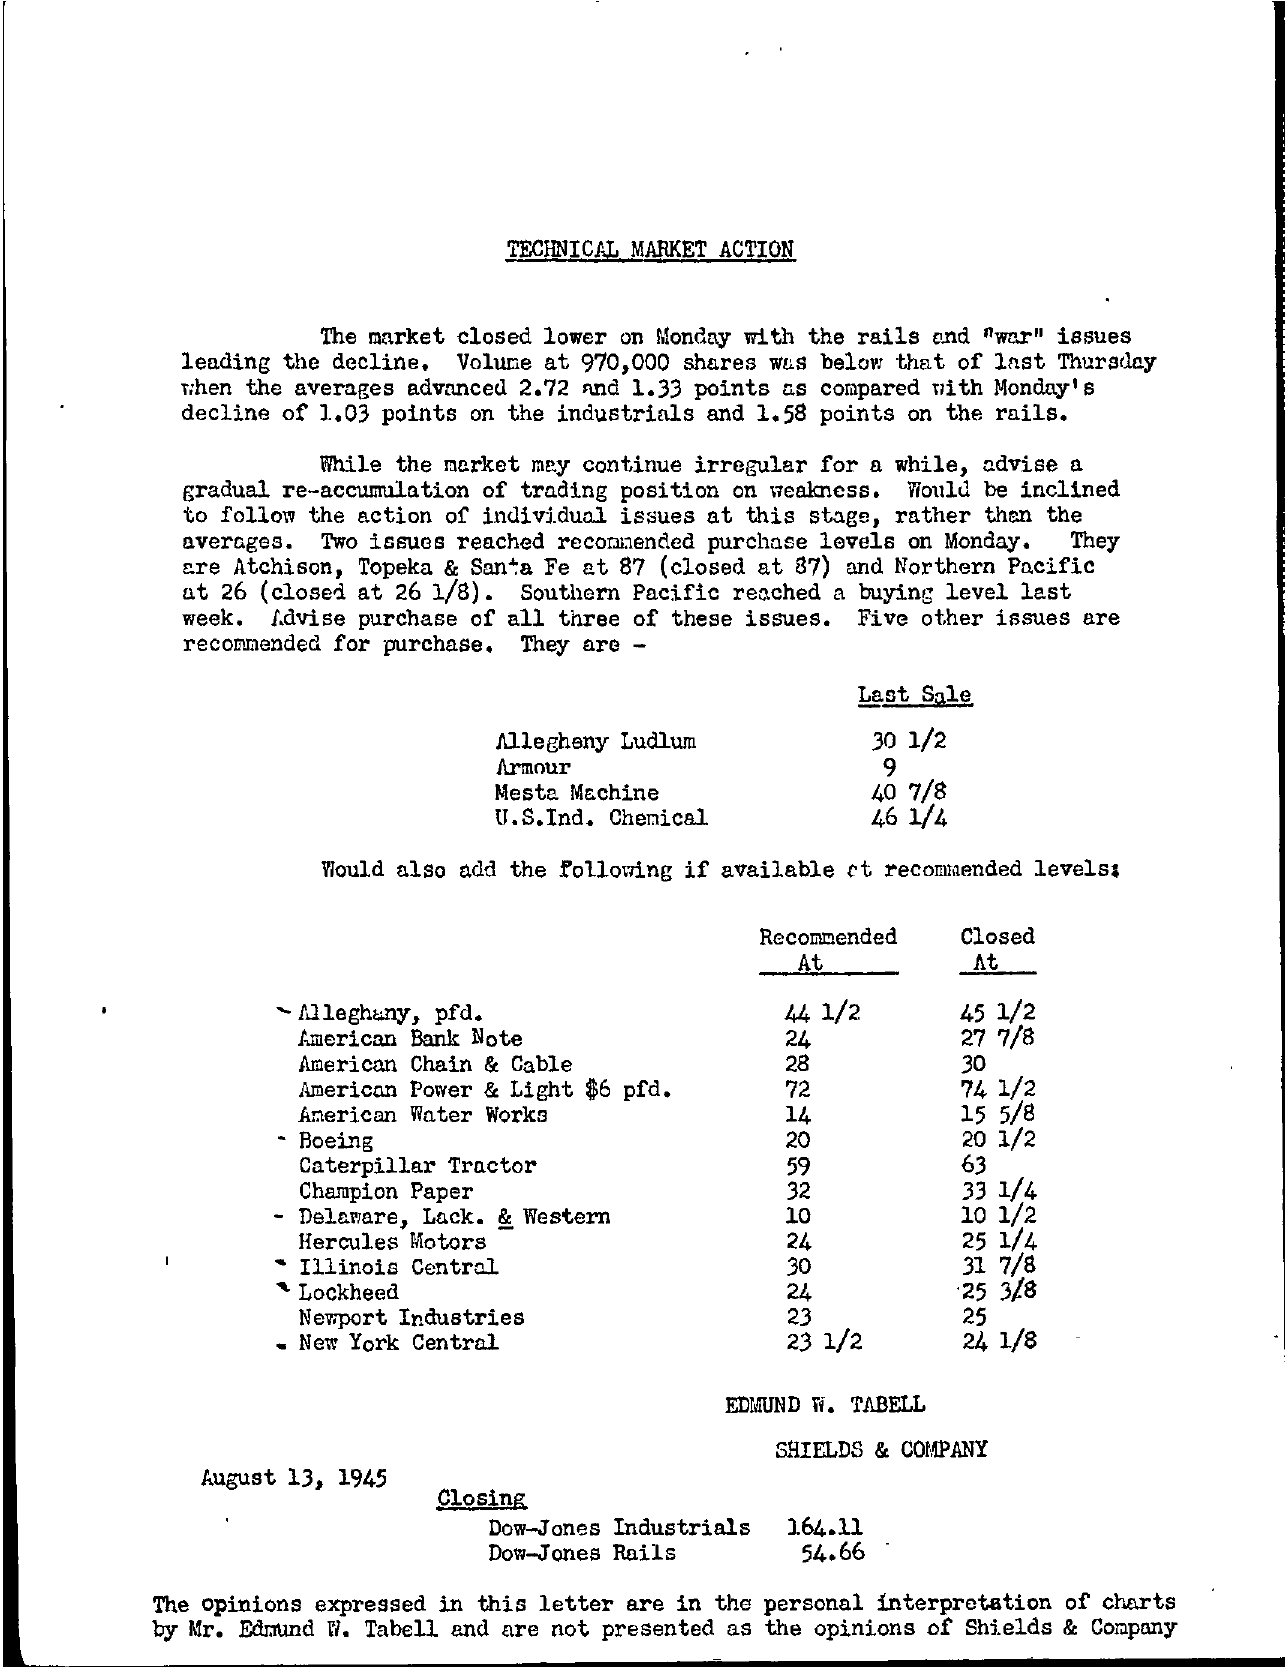 Tabell's Market Letter - August 13, 1945